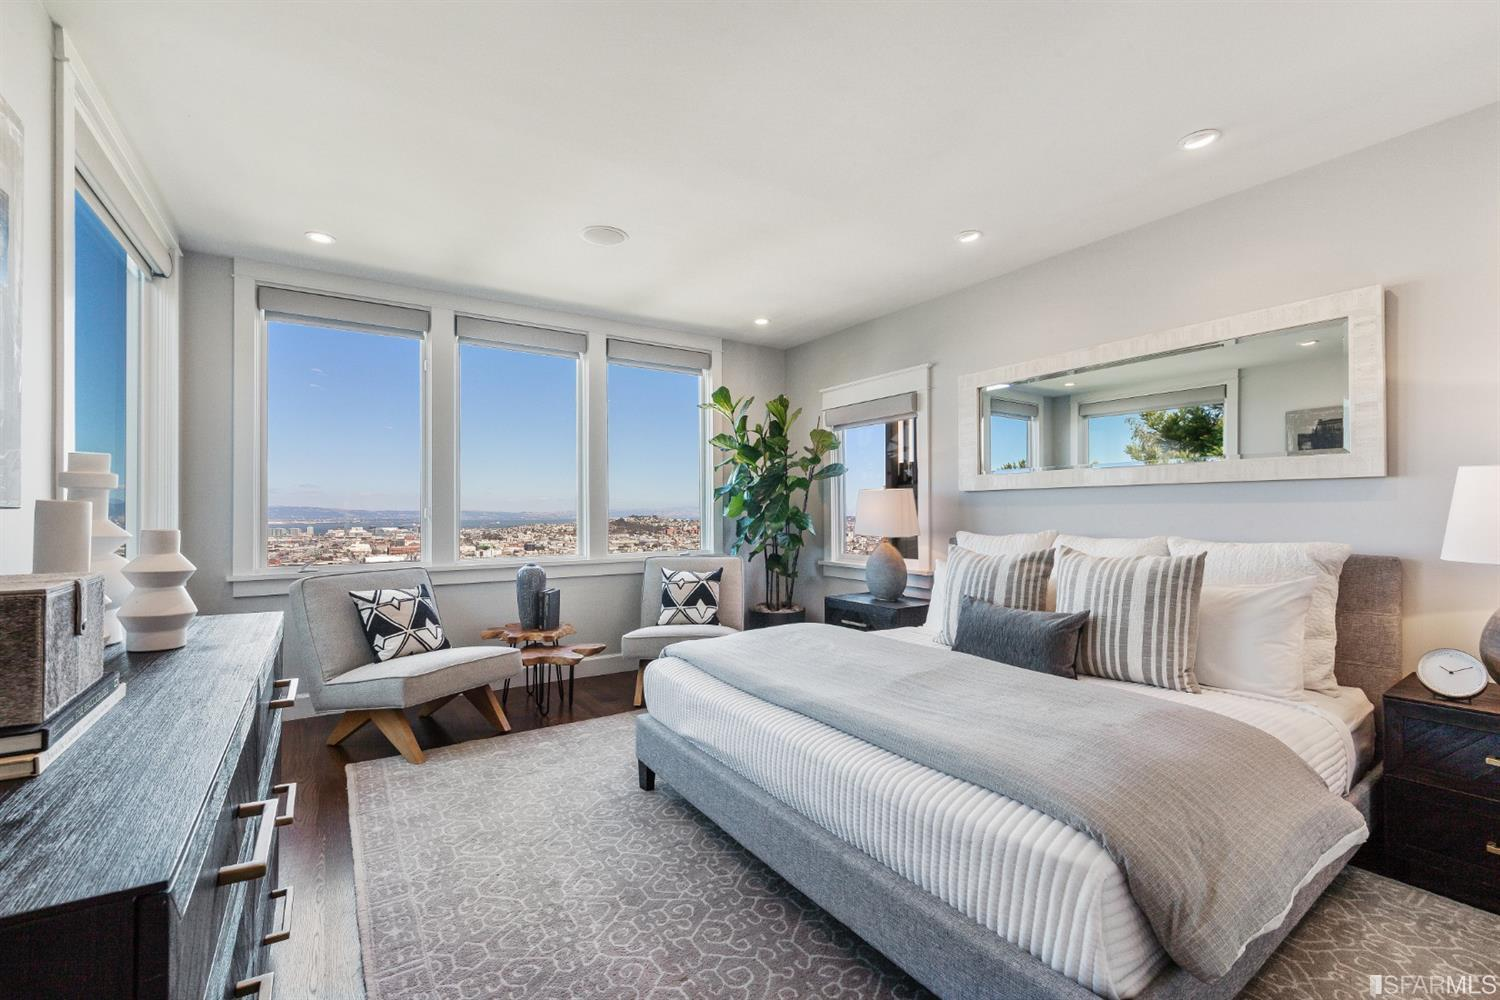 Modern bedroom with large windows overlooking the city